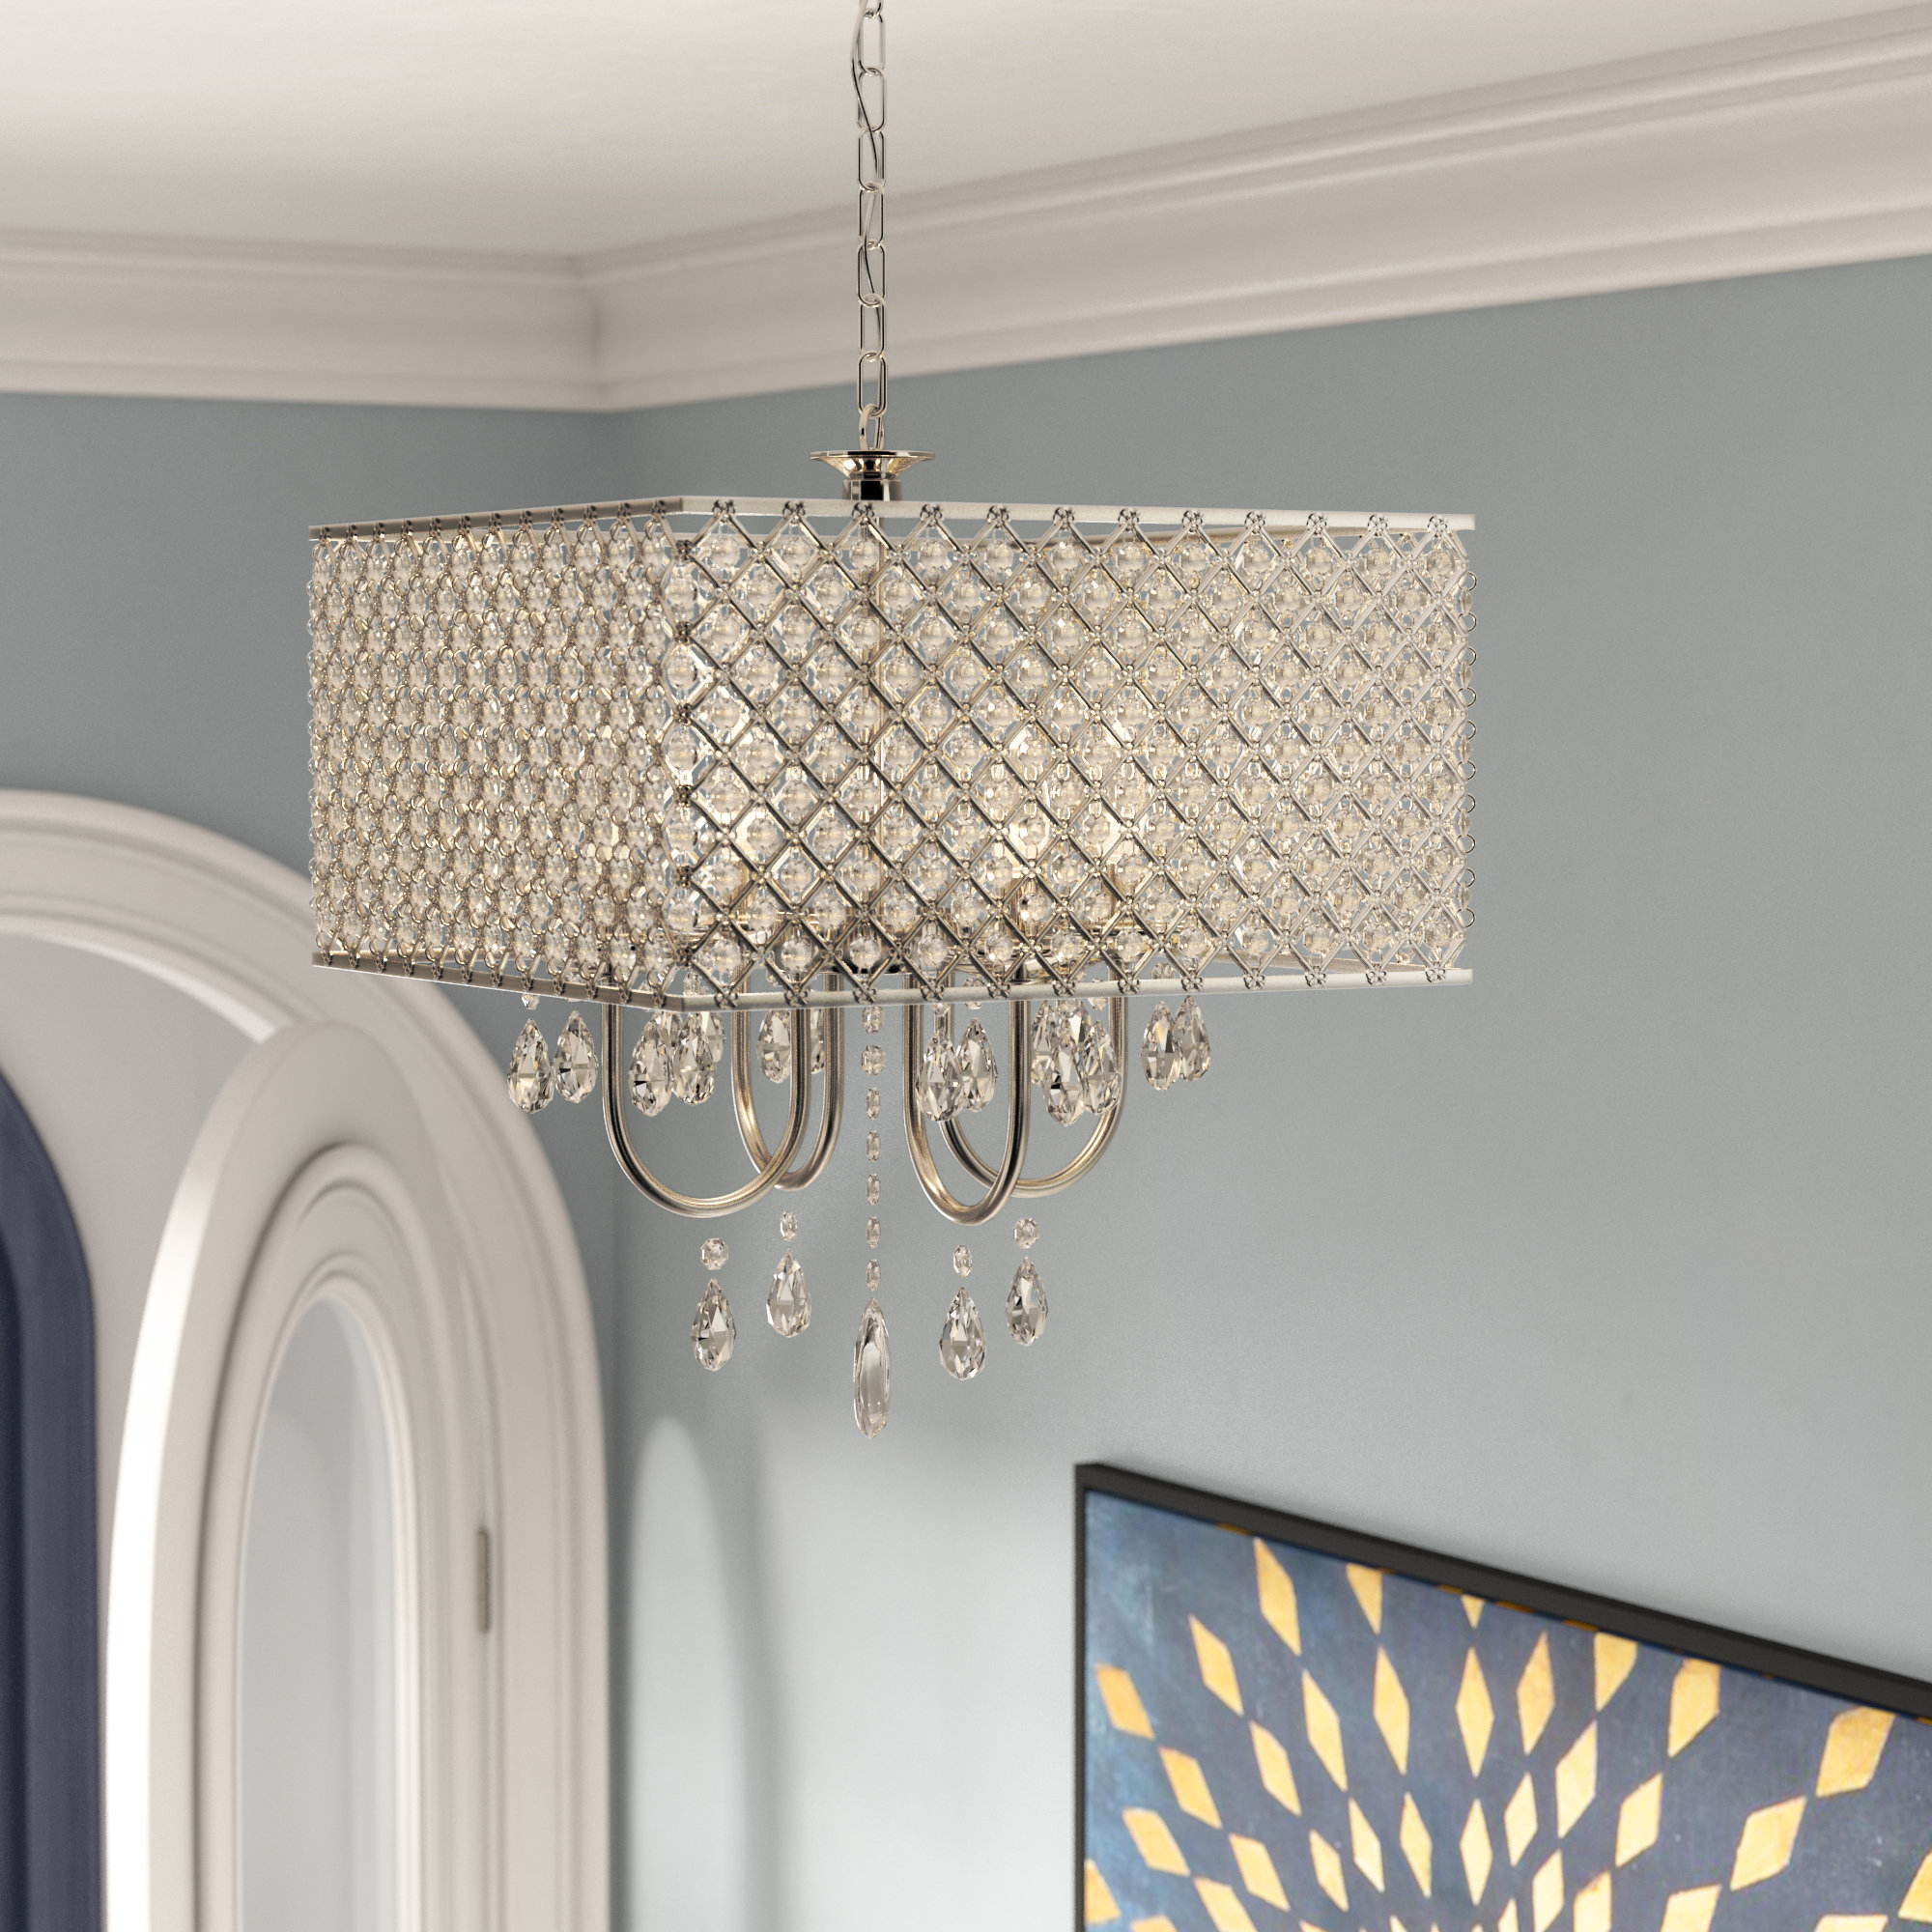 Most Recent Aurore 4 Light Crystal Chandeliers Within Garrin Square 4 Light Crystal Chandelier (View 3 of 20)